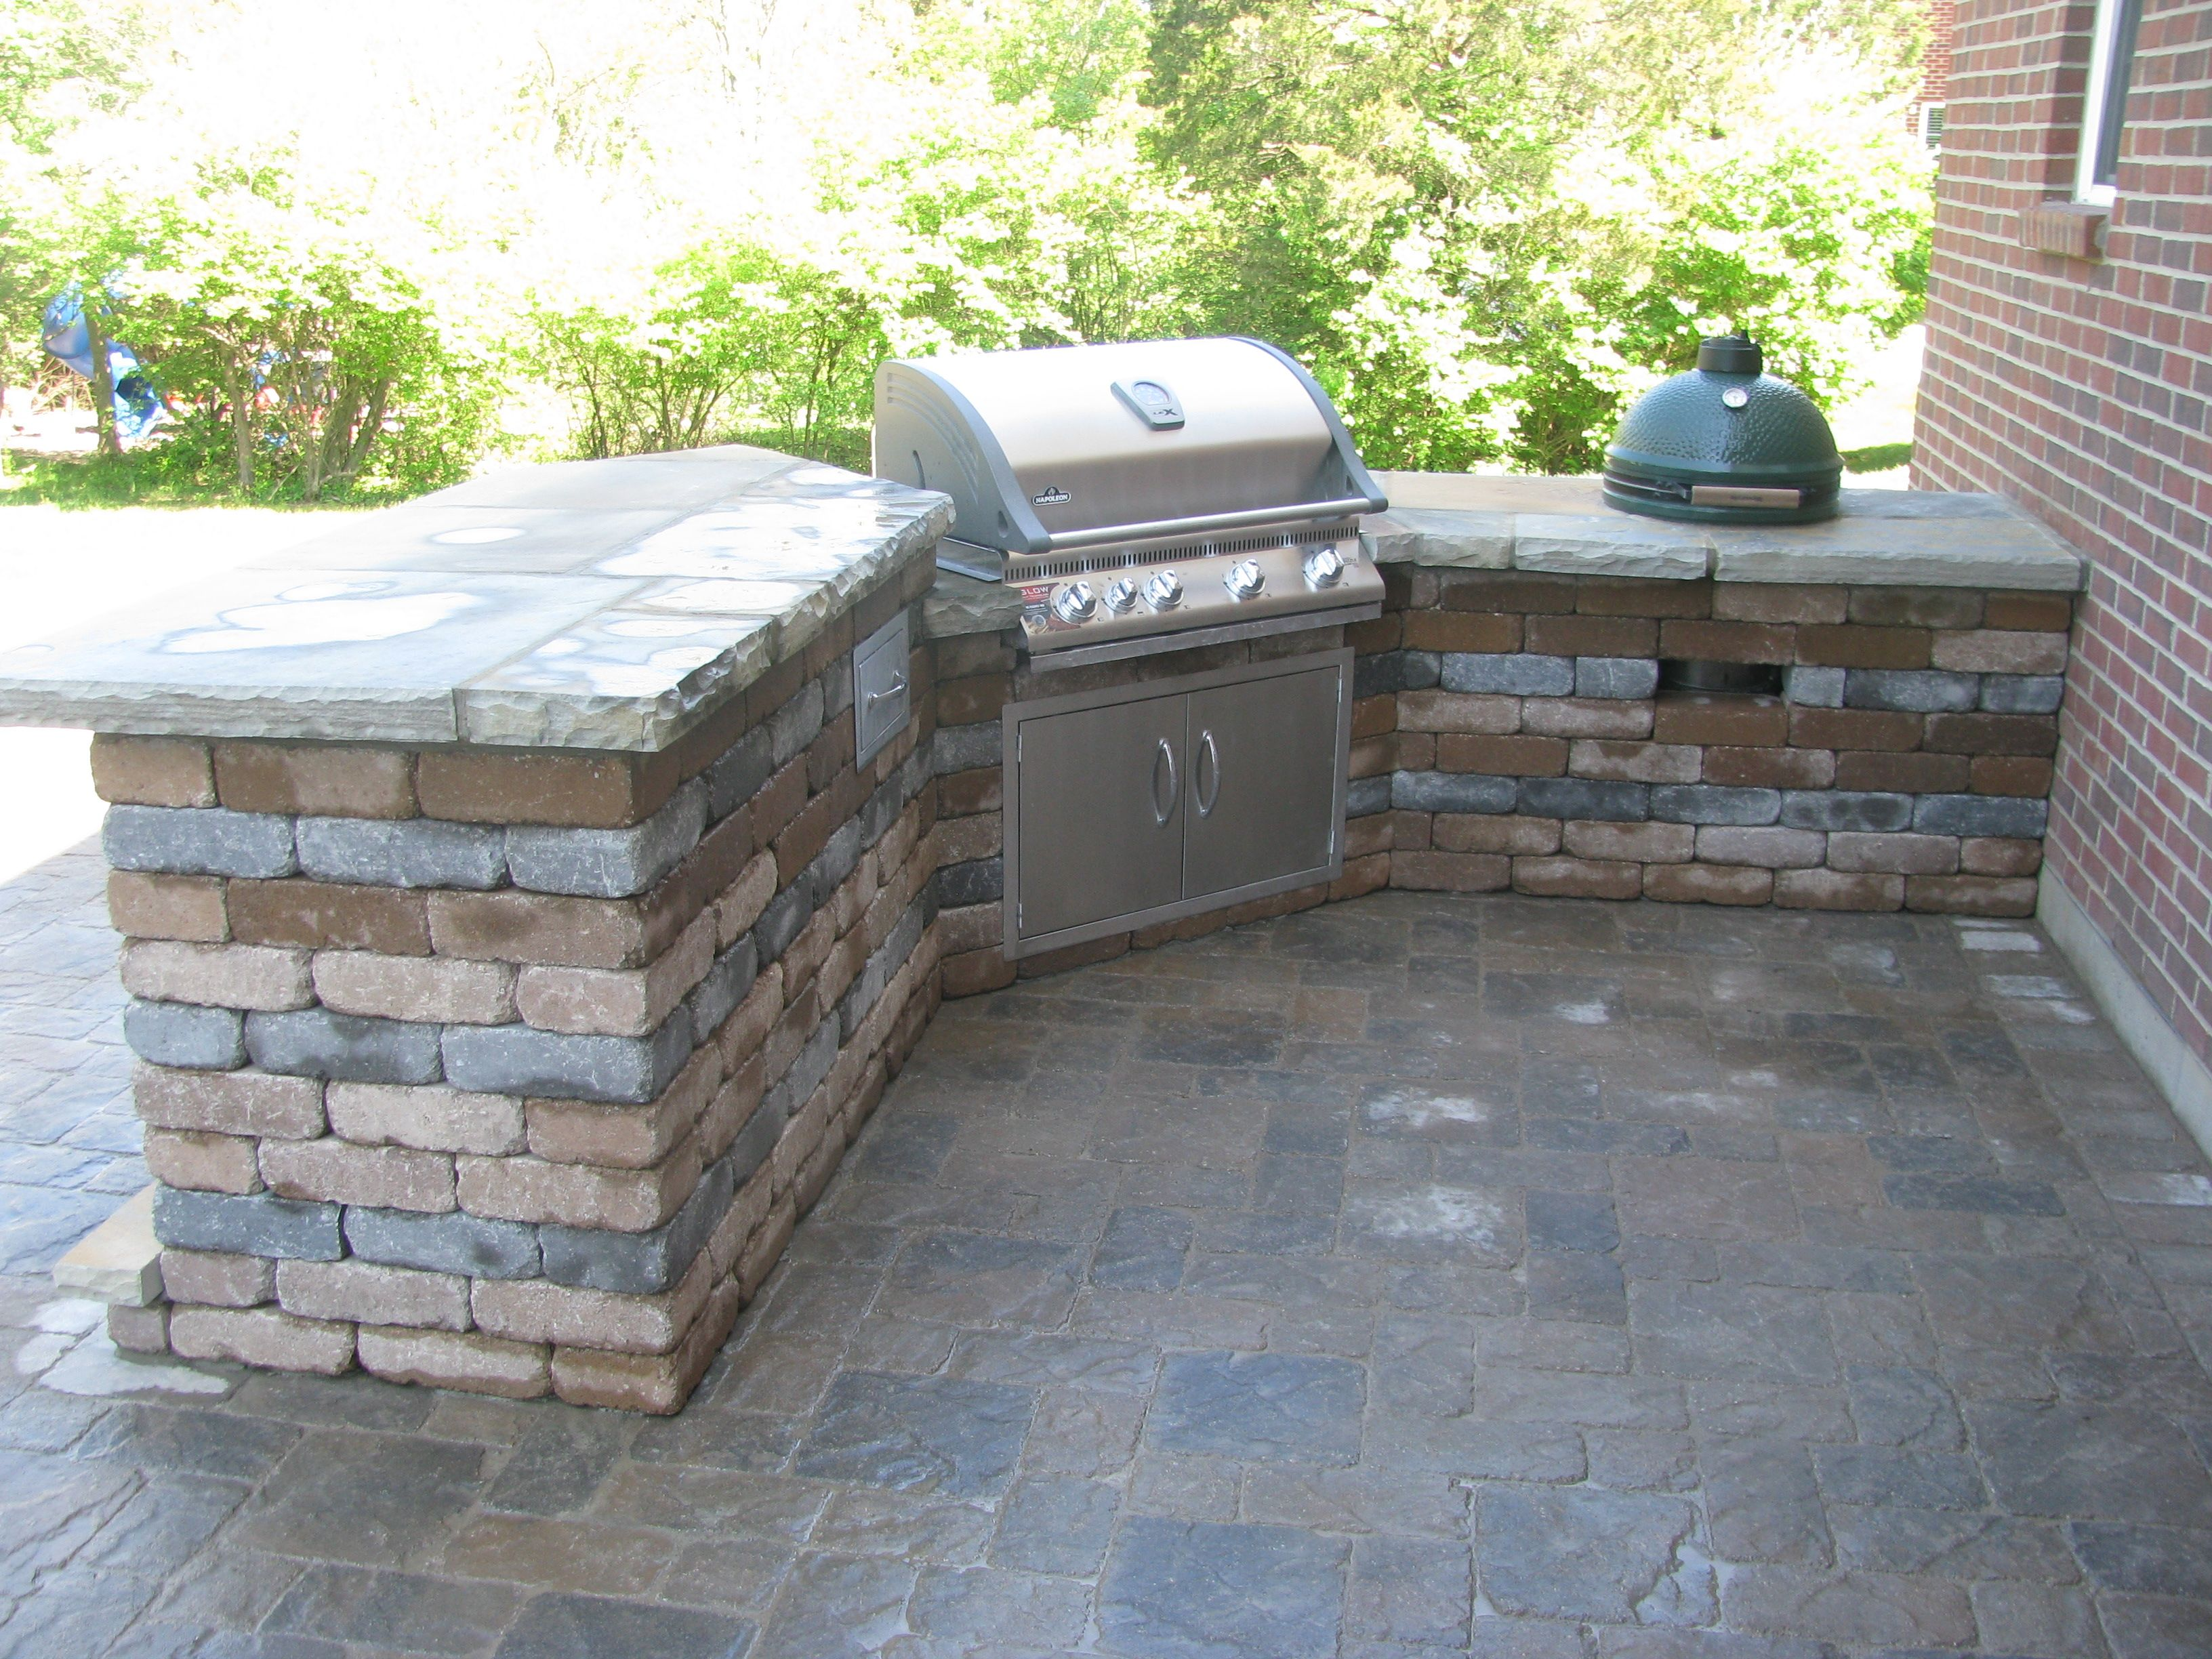 Grill Surround With Natural Flagstone Top Rumbled Wall Material Backyard Plan Outdoor Furniture Sets Outdoor Kitchen